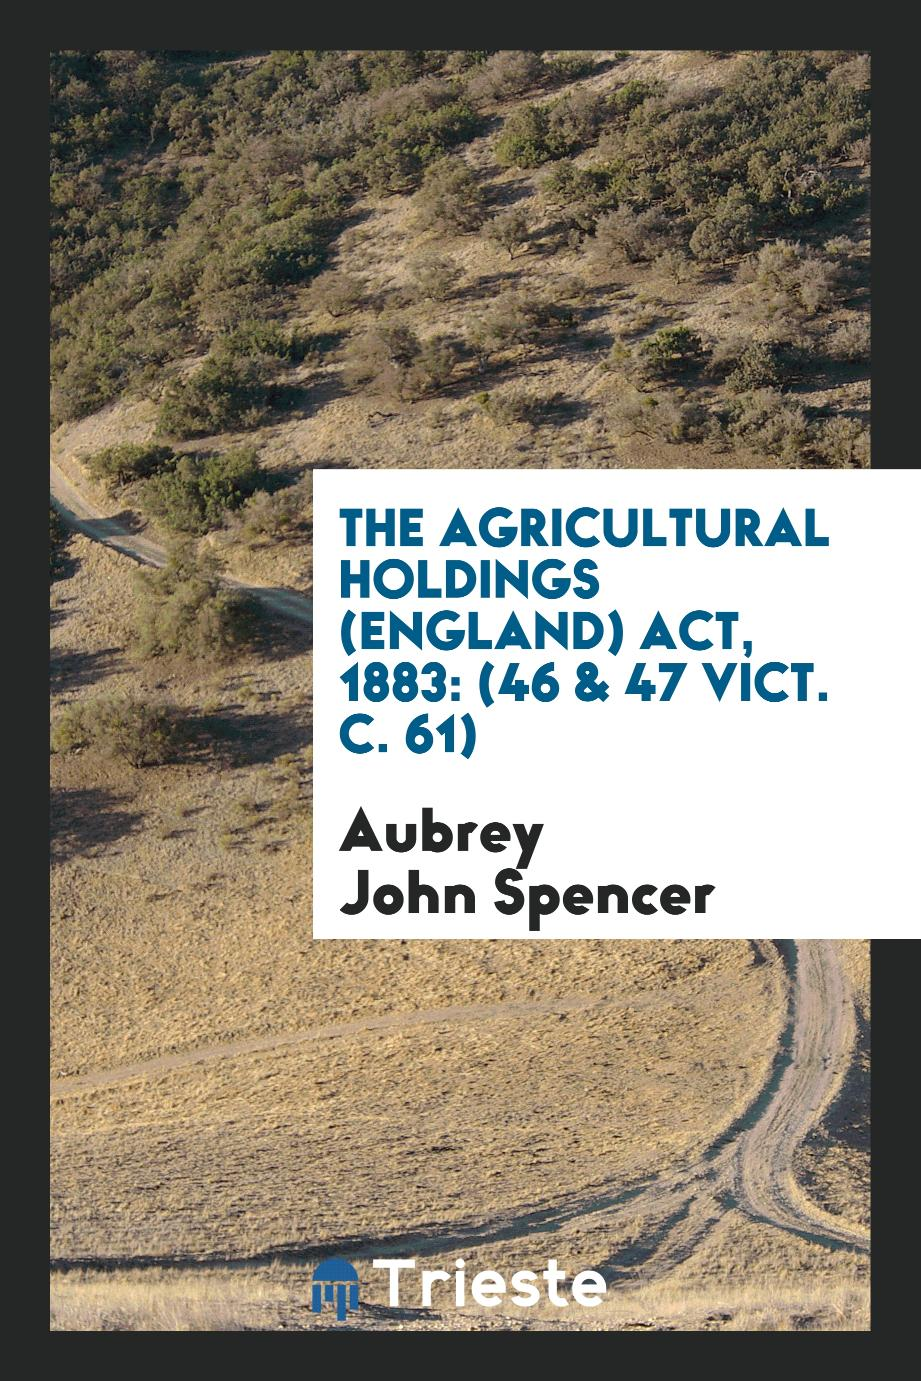 The Agricultural Holdings (England) Act, 1883: (46 & 47 Vict. C. 61)